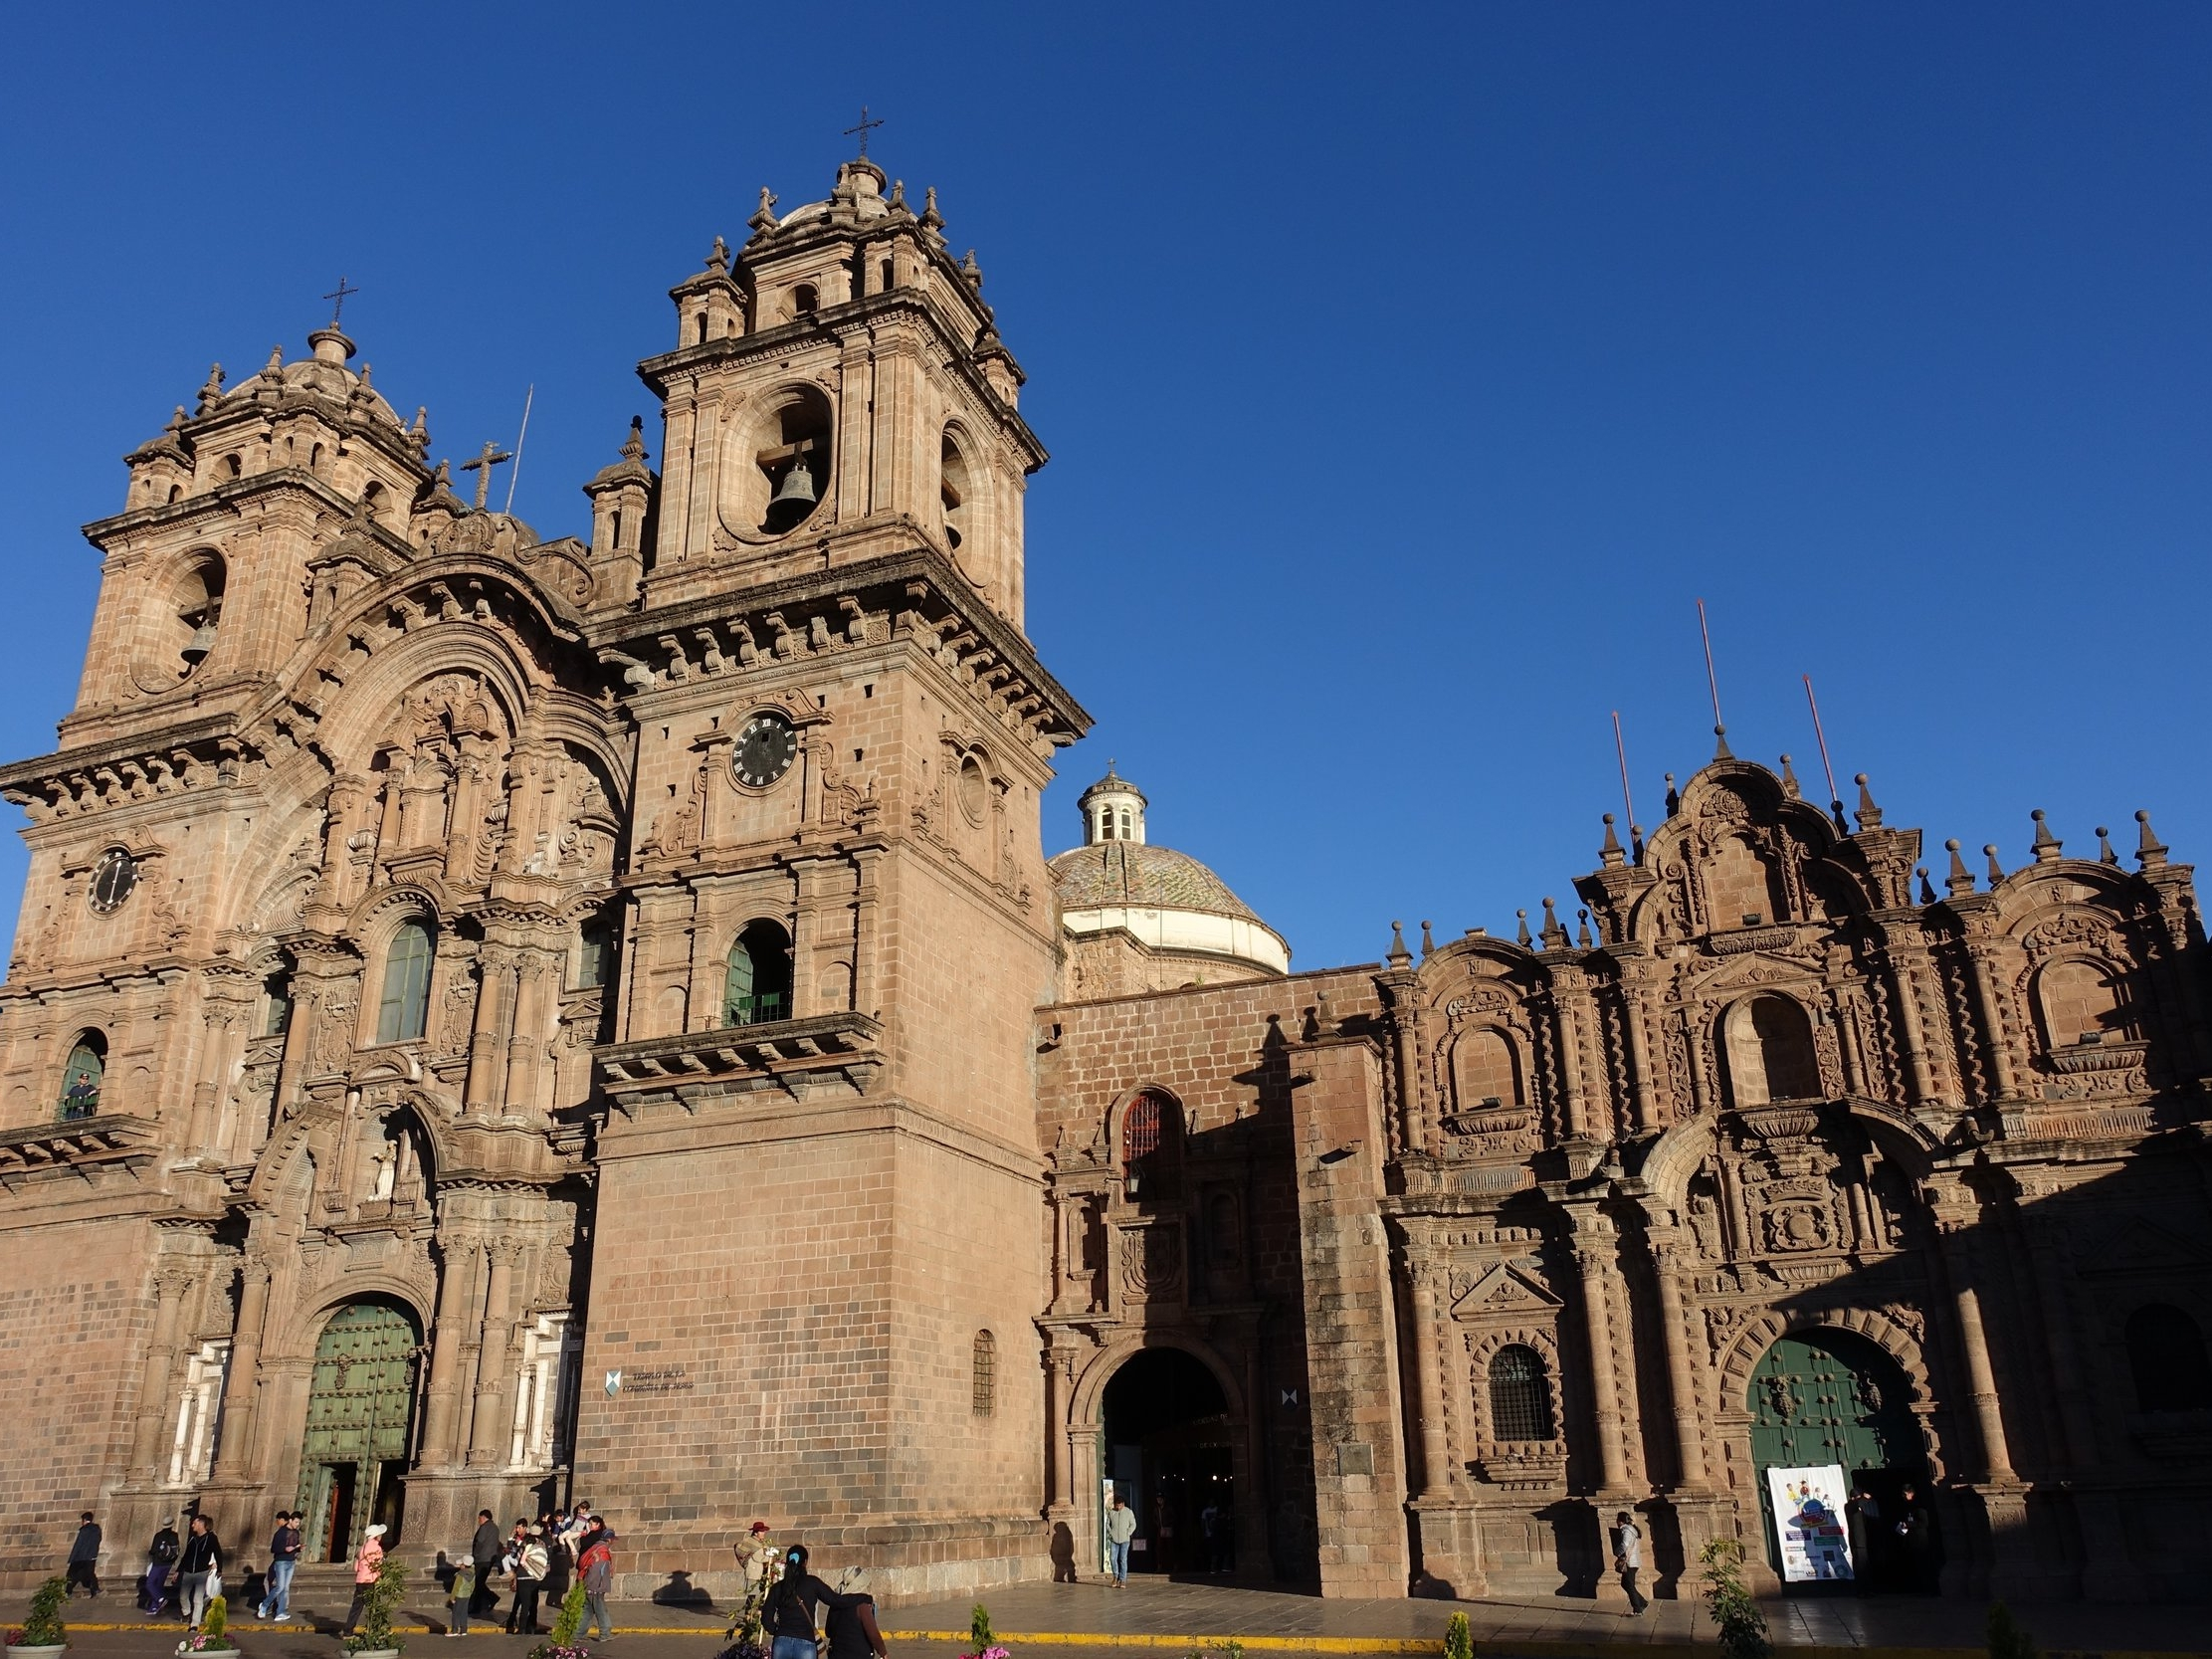 The Cathedral in the Plaza de Armas